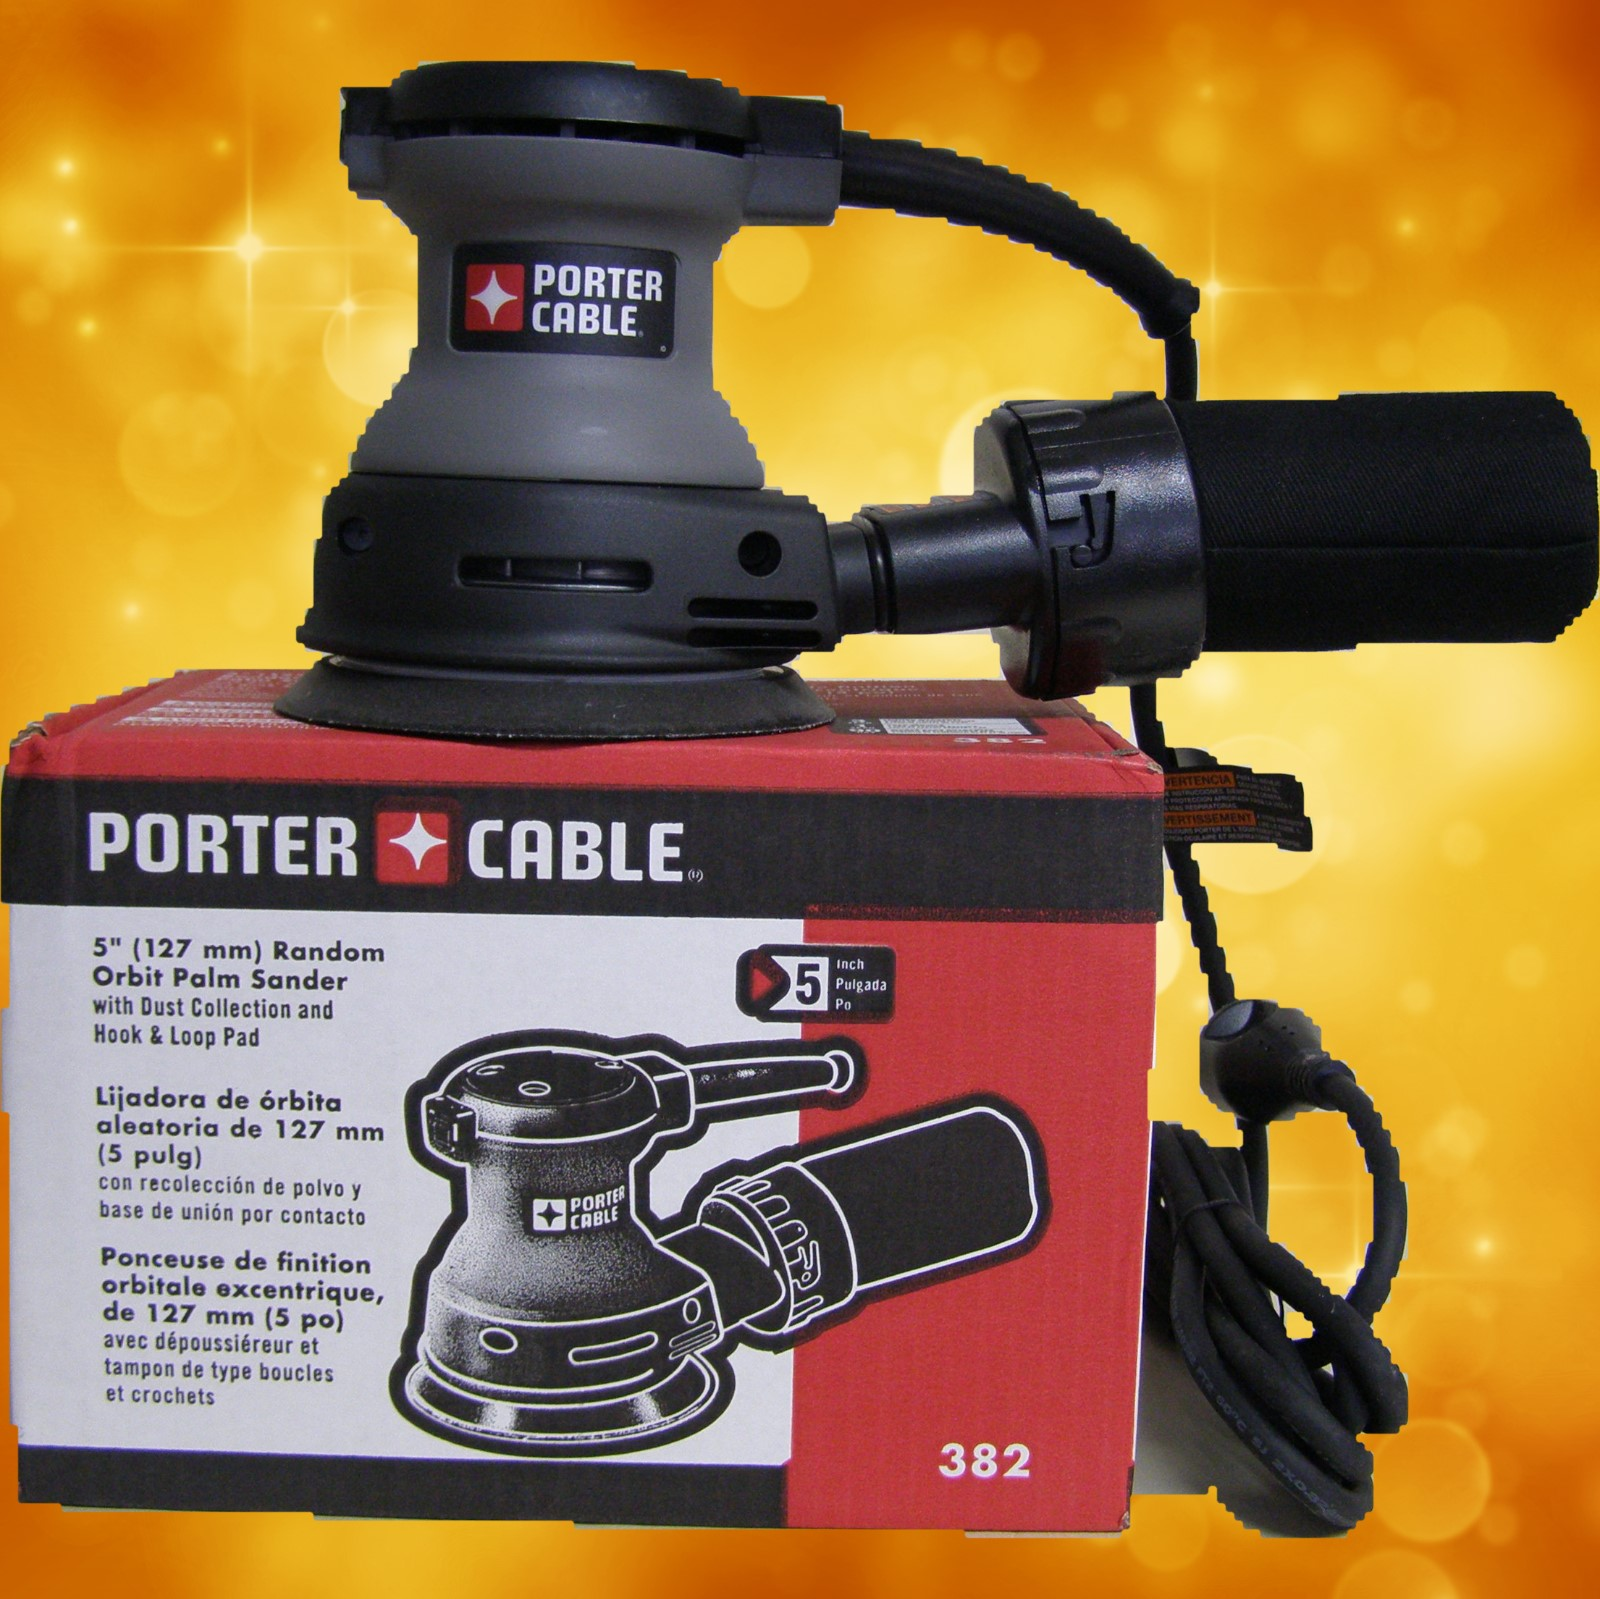 "Porter Cable 5"" Random Orbit Palm Sander 382"